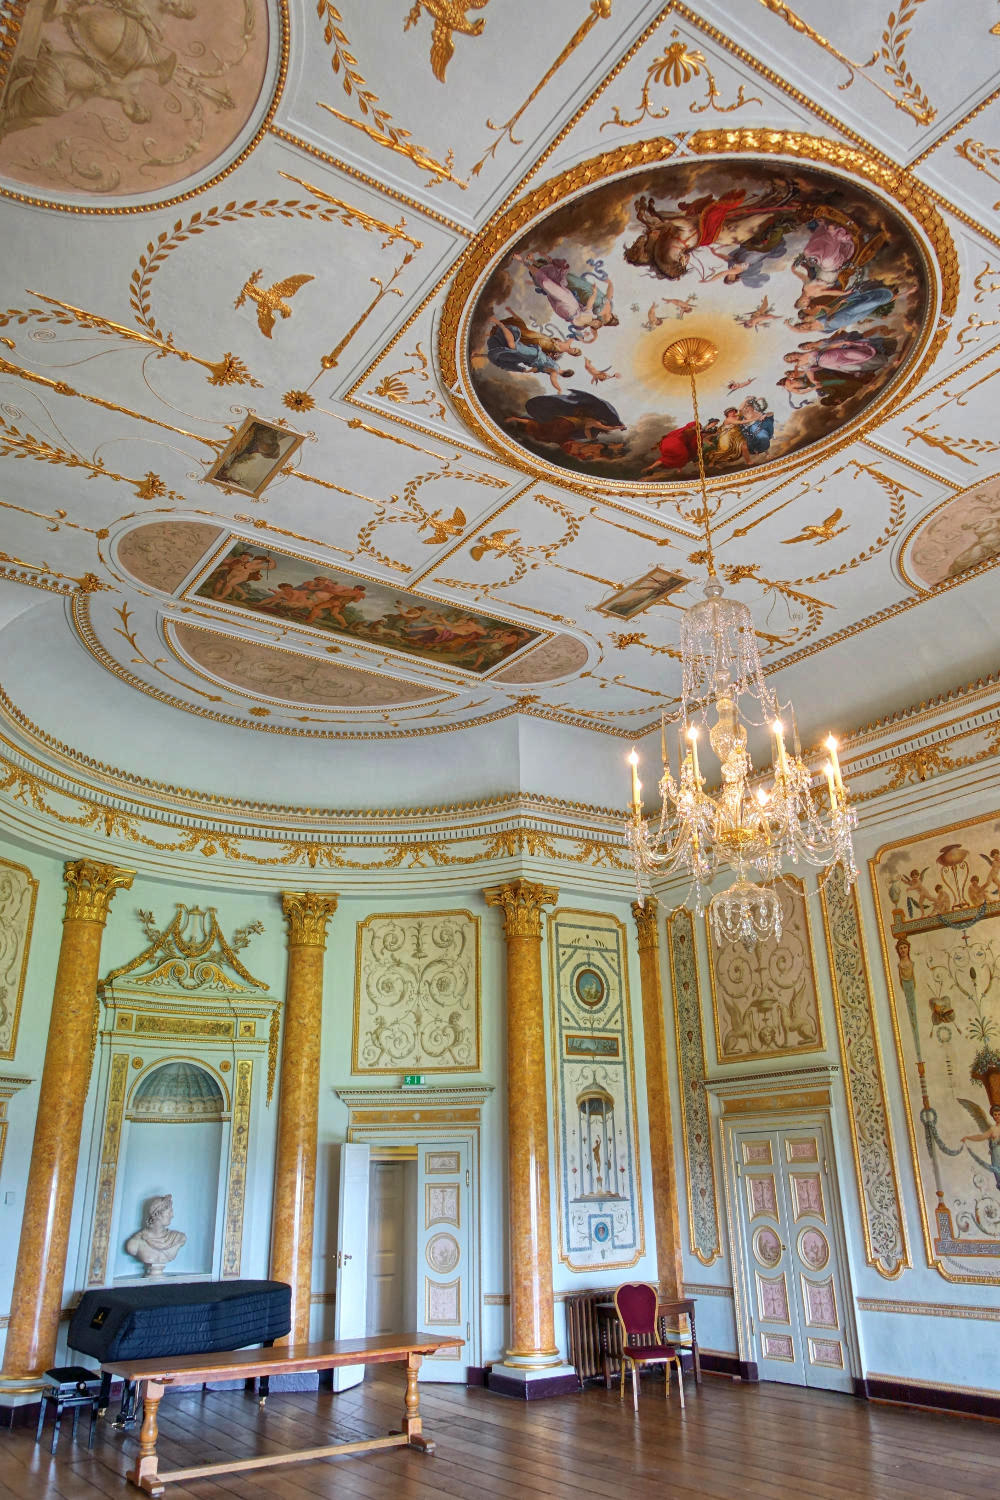 State Music Room at Stowe House, Buckinghamshire. Credit Daderot